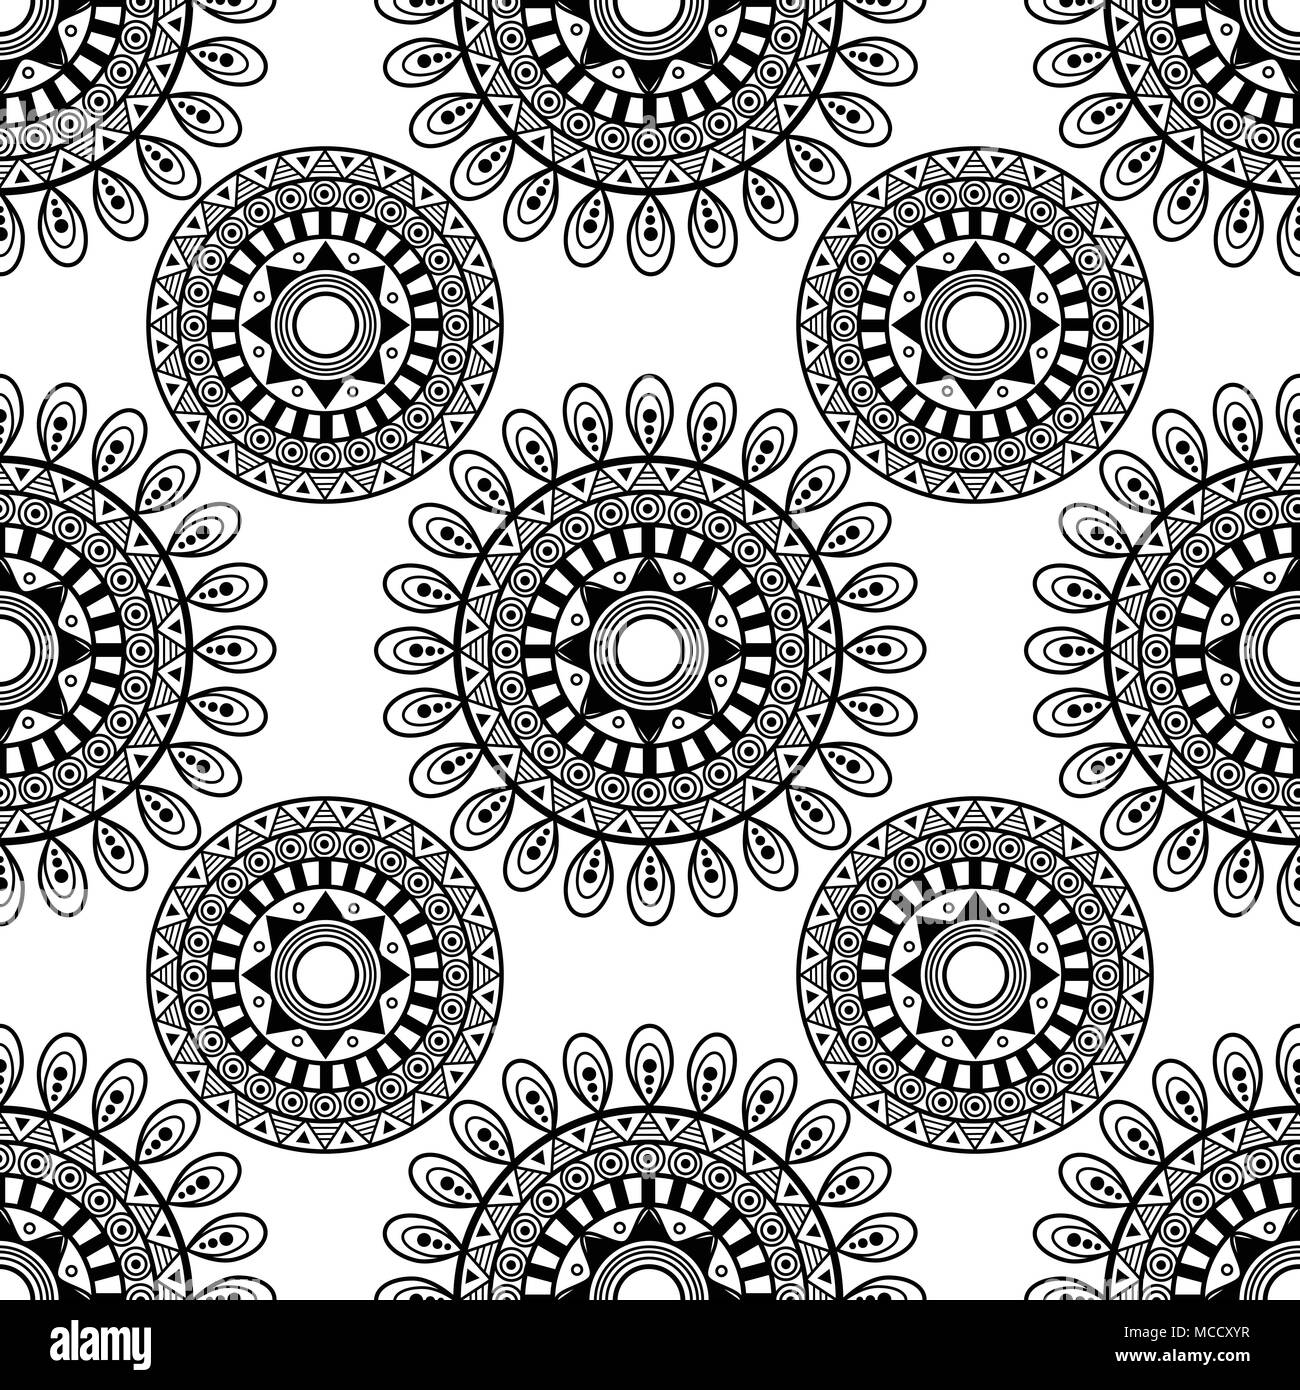 siamless pattern. sentagle. isolate. vector. - Stock Image